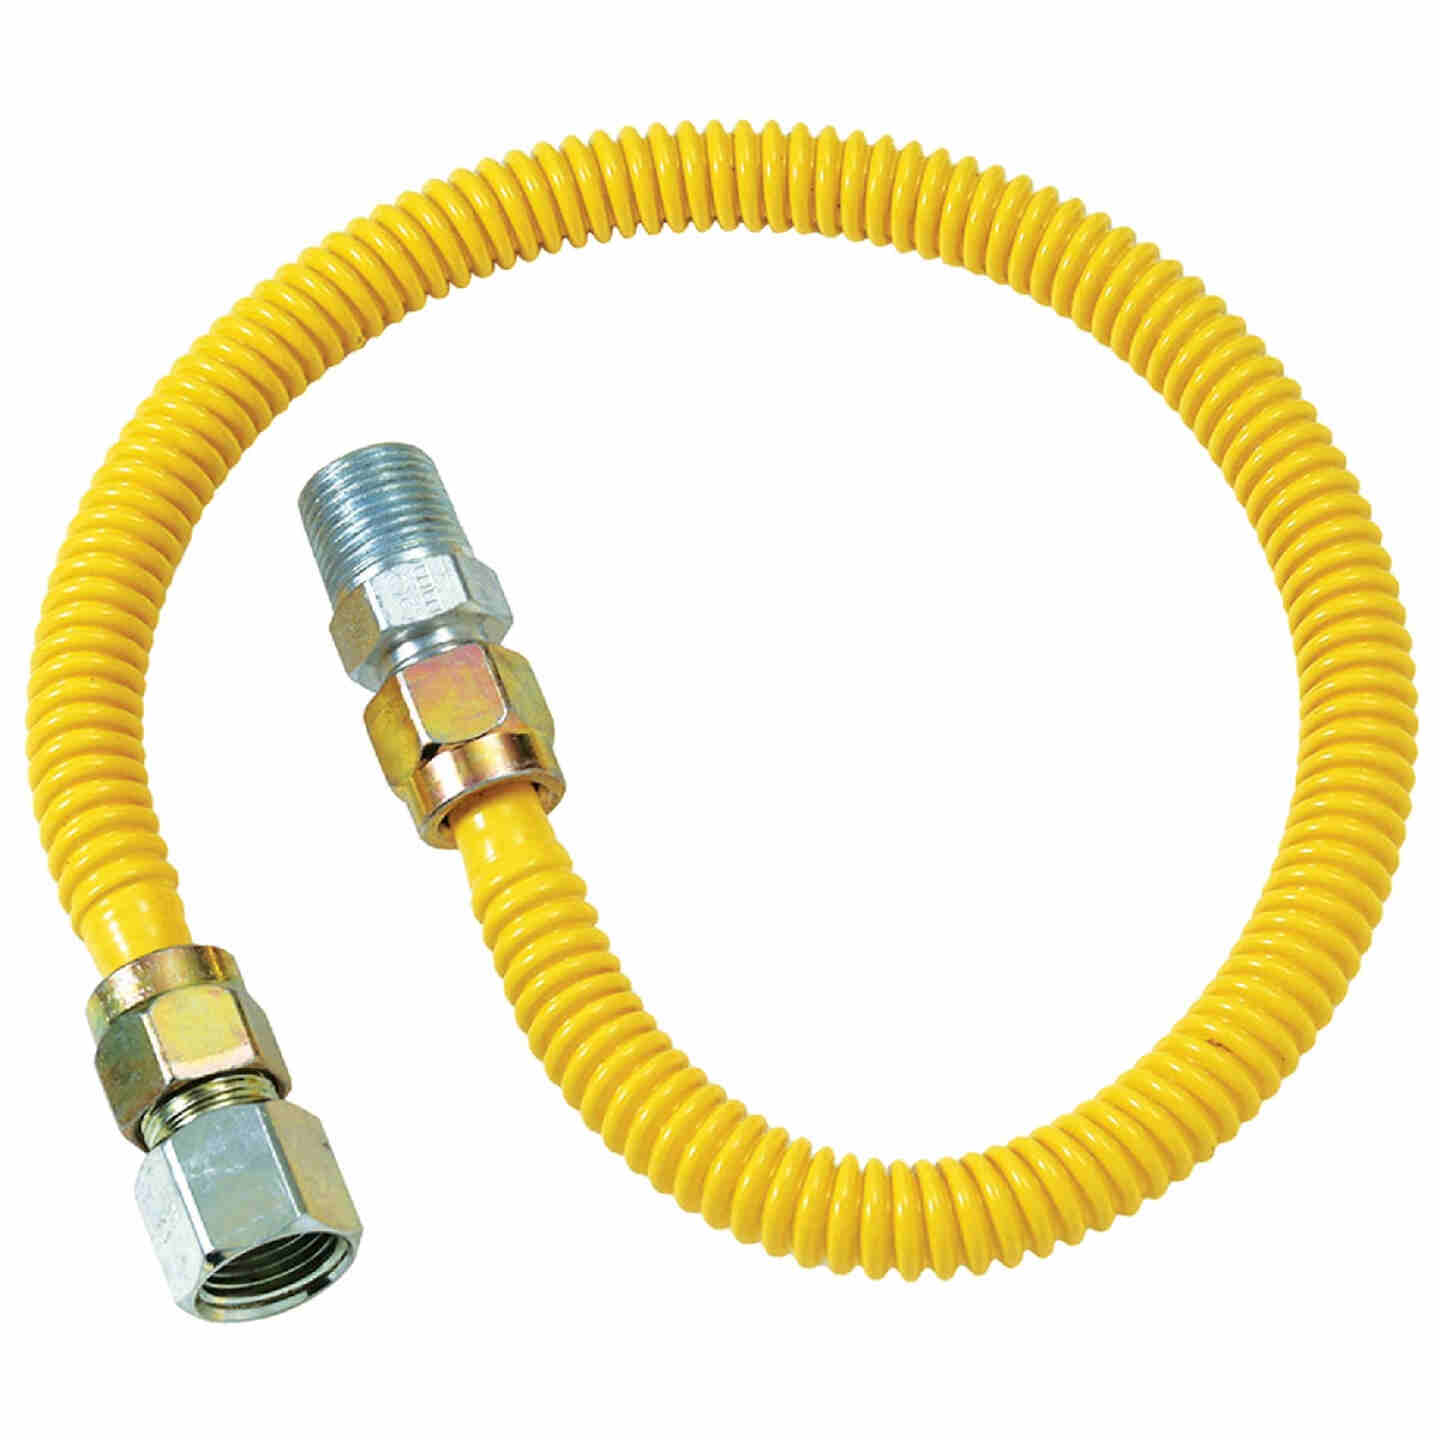 Dormont 1/2 In. OD x 48 In. Coated Stainless Steel Gas Connector, 1/2 In. FIP x 1/2 In. MIP (Tapped 3/8 In. FIP) Image 1